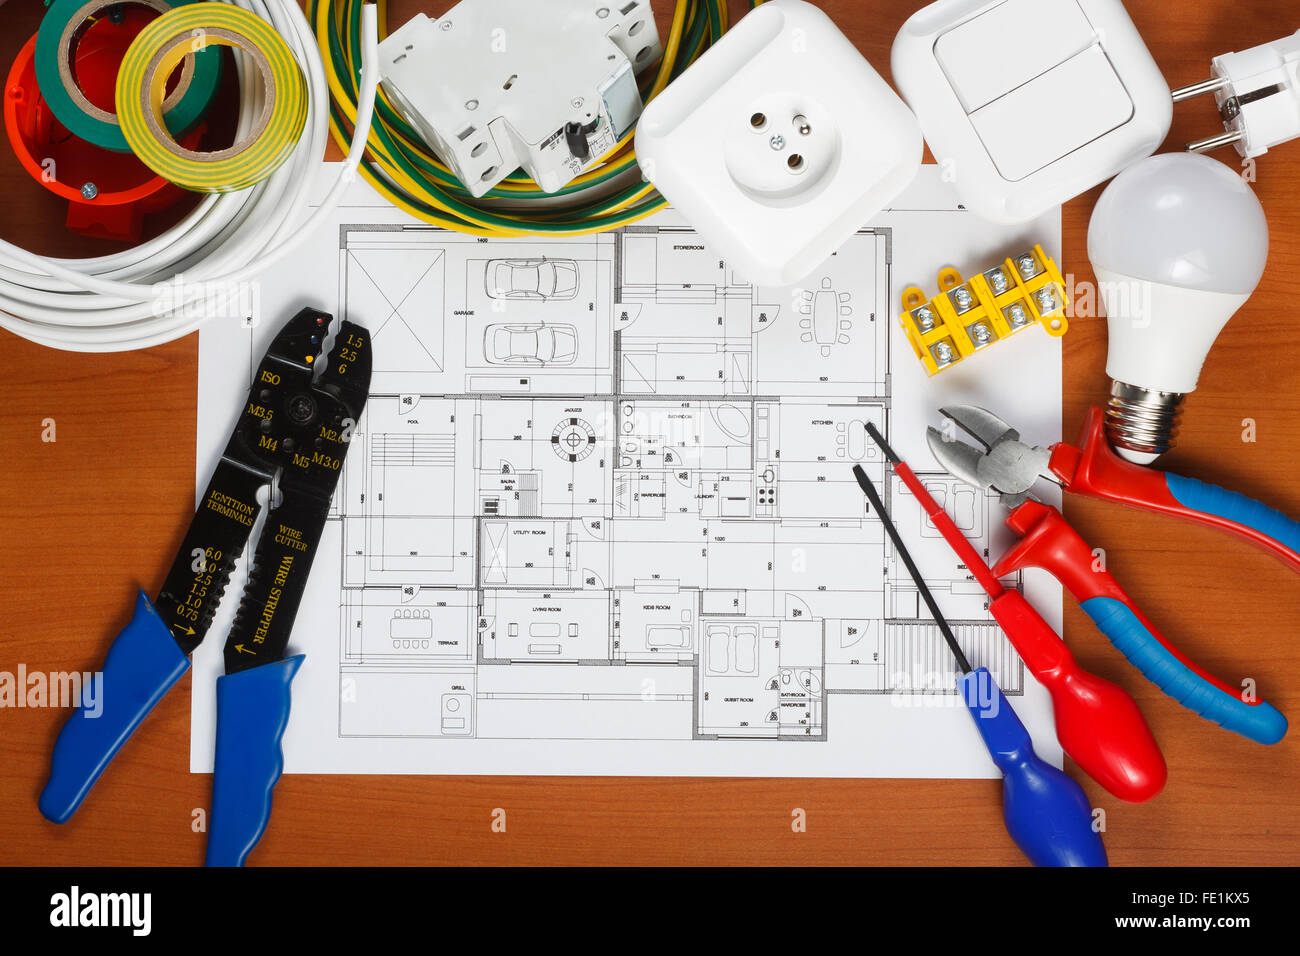 Electrical equipment, tools and house plans on the desk - Stock Image